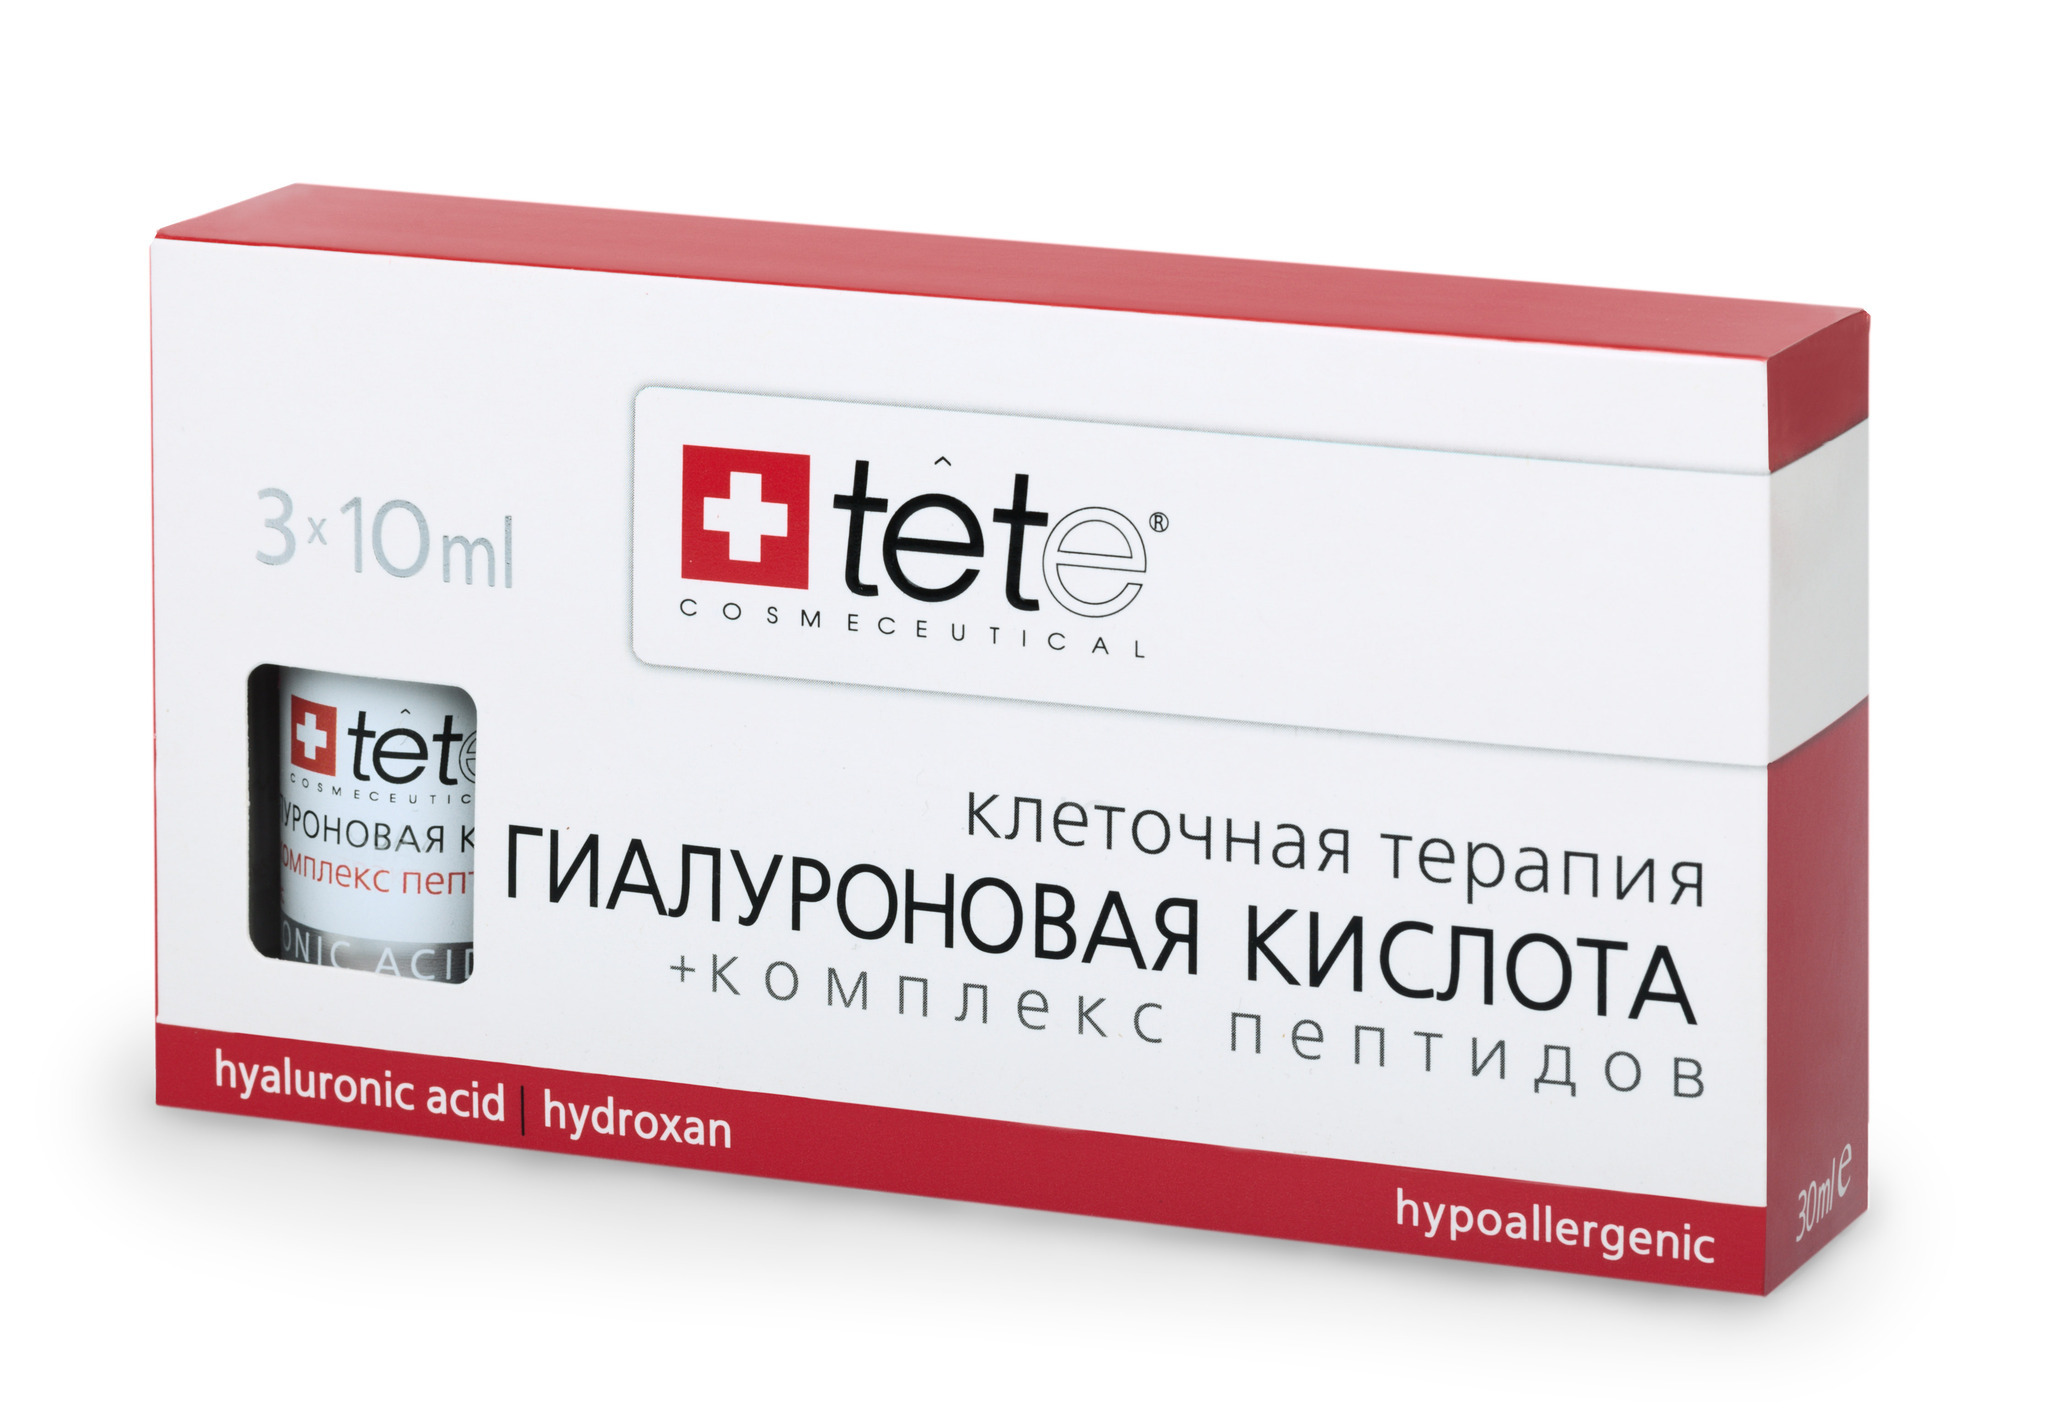 Гиалуроновая кислота + комплекс пептидов / Hyaluronic acid & Peptides/Tete